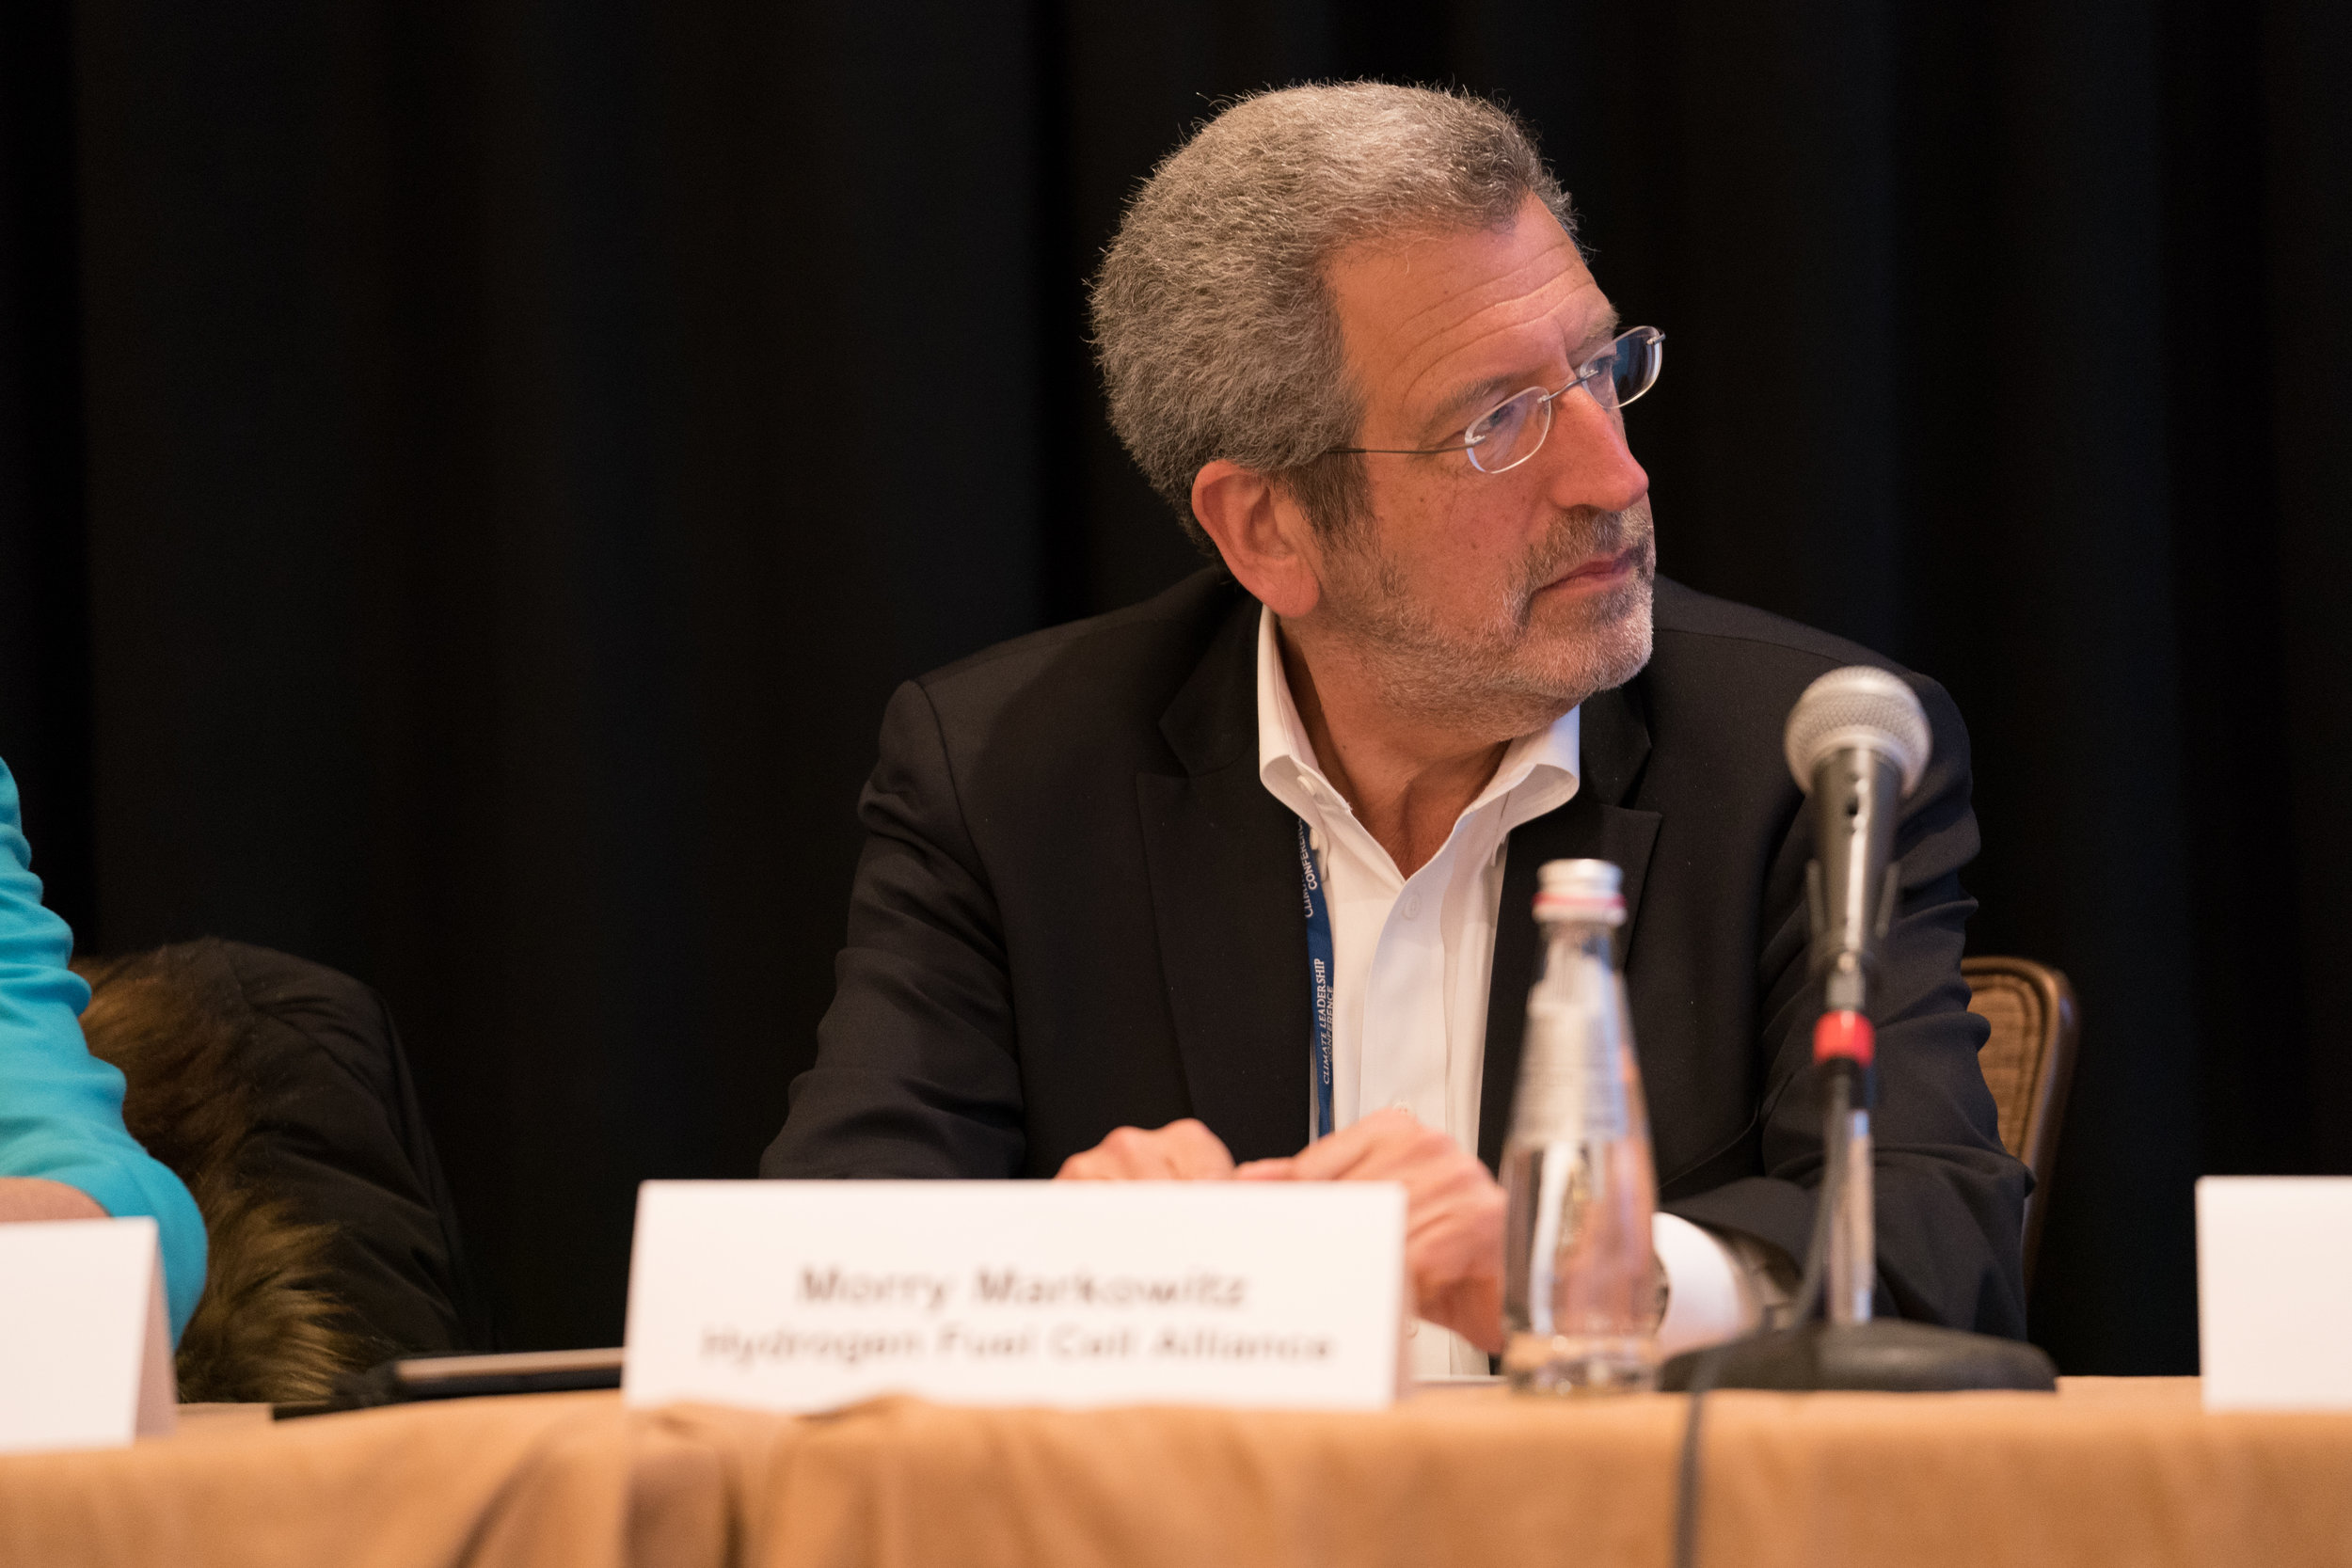 FCHEA President Morry Markowitz speaks at the 2018 Climate Leadership Conference. Source: Climate Leadership Conference